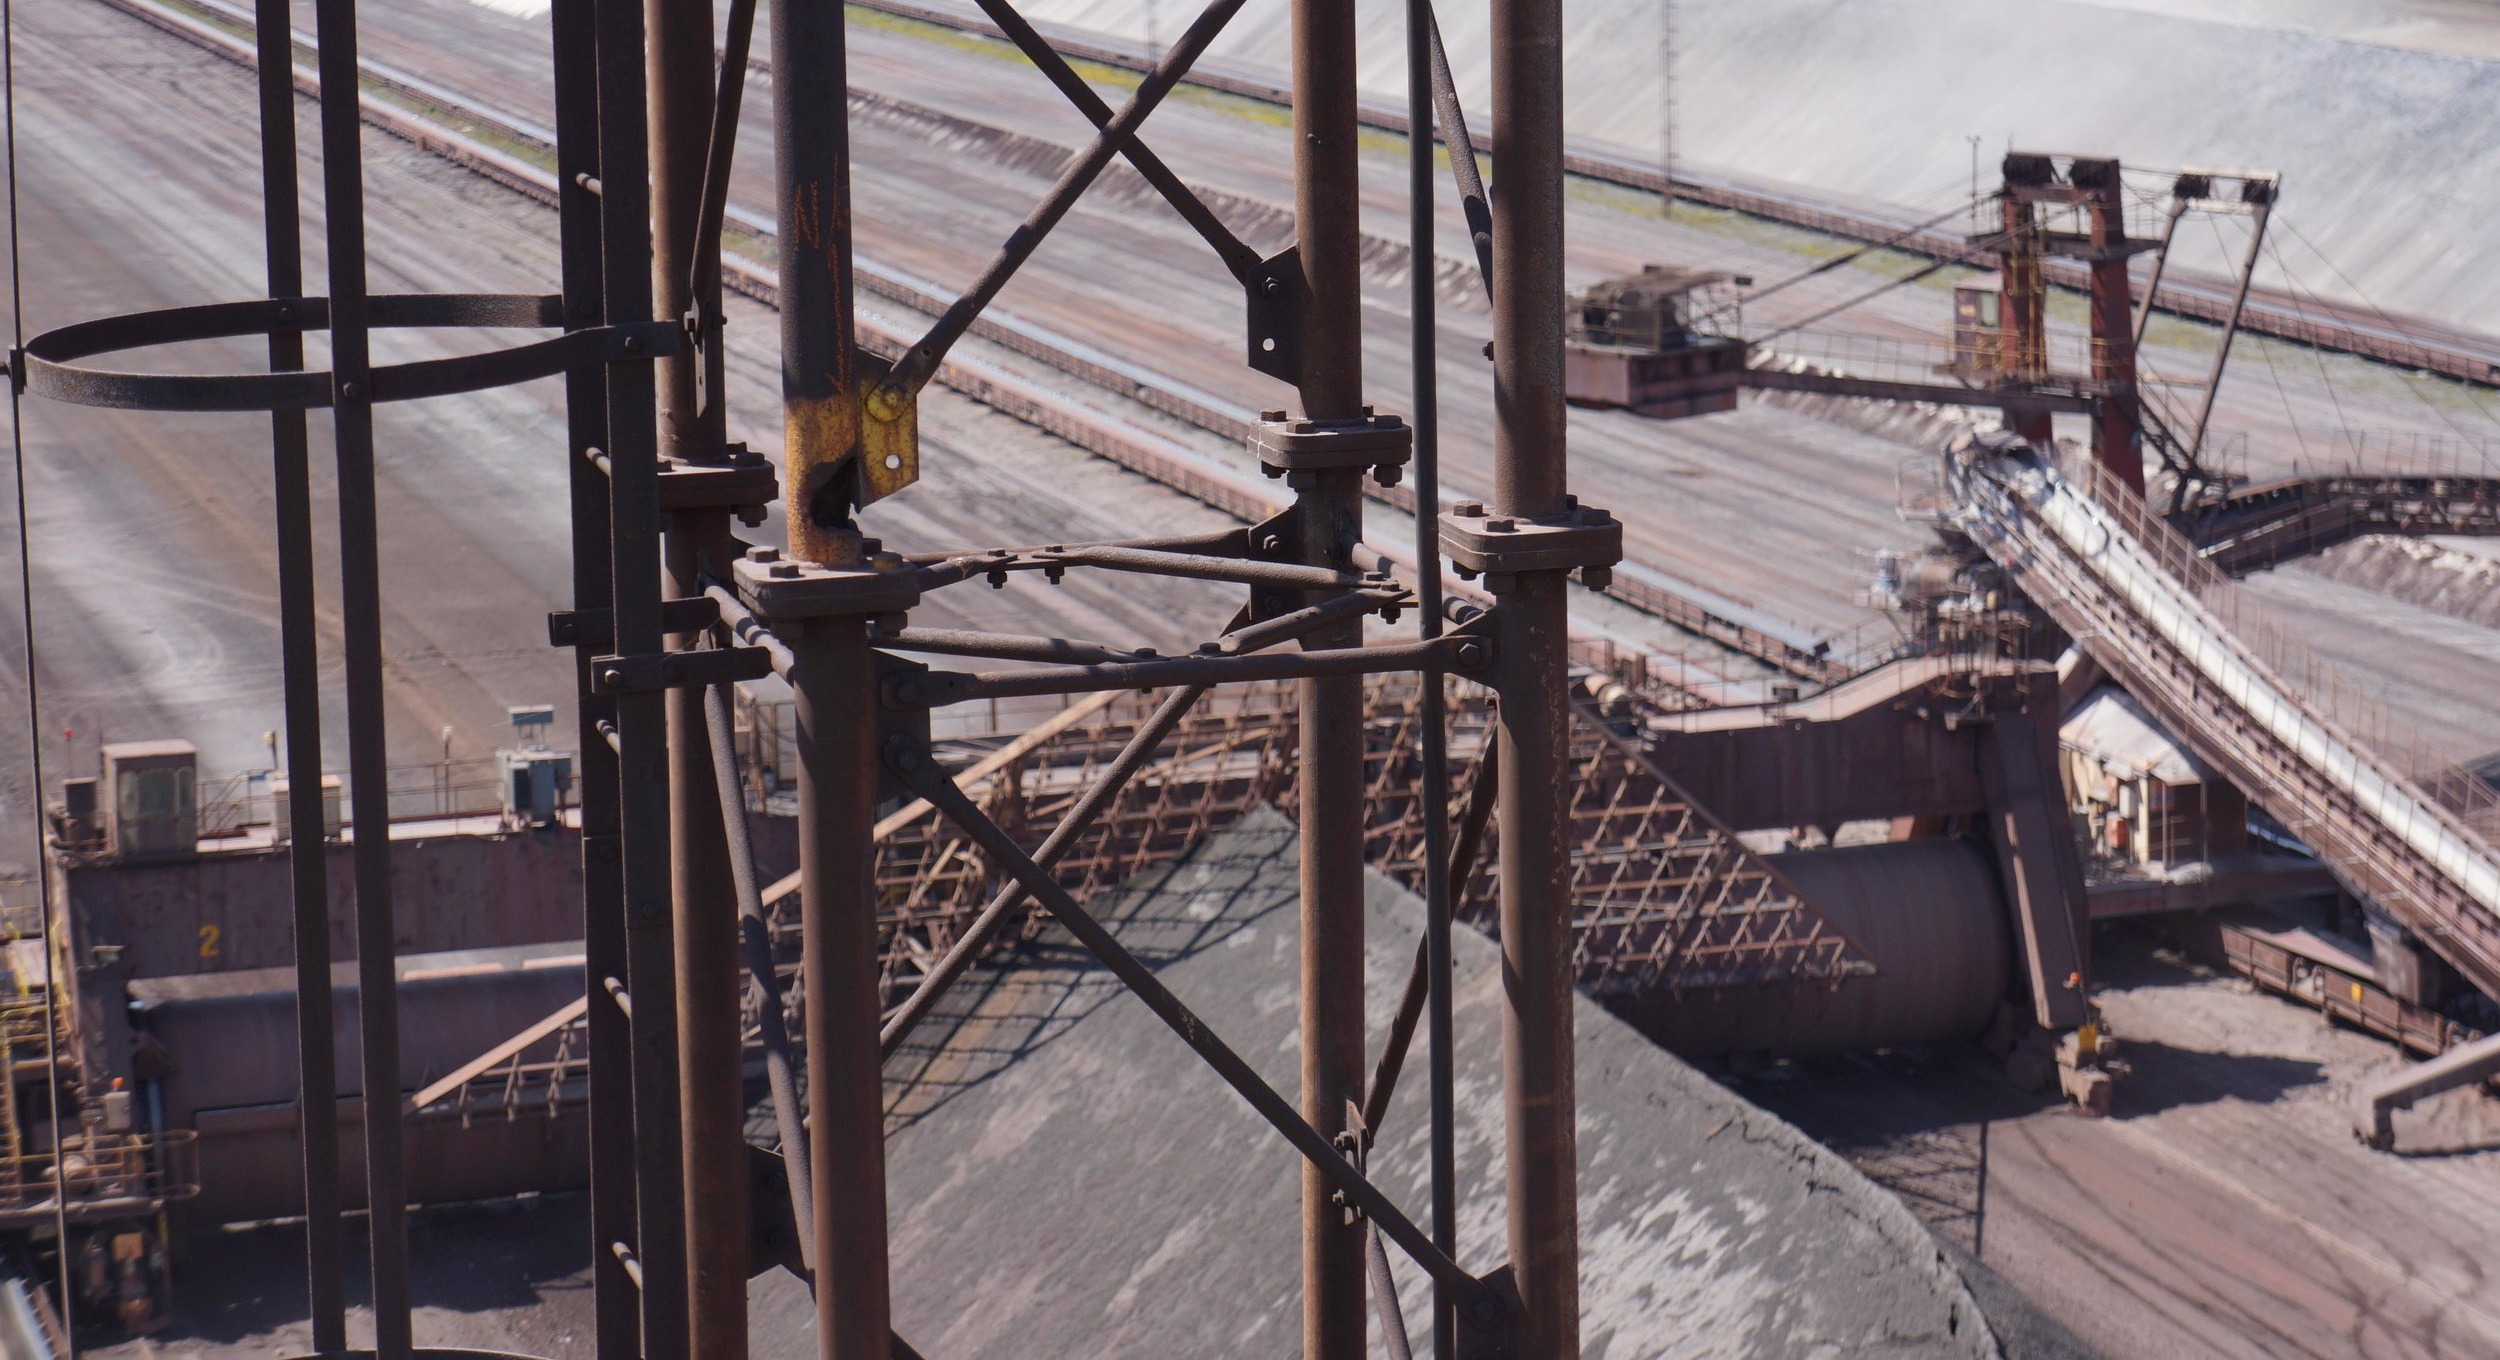 Drone survey of steelwork lighting tower